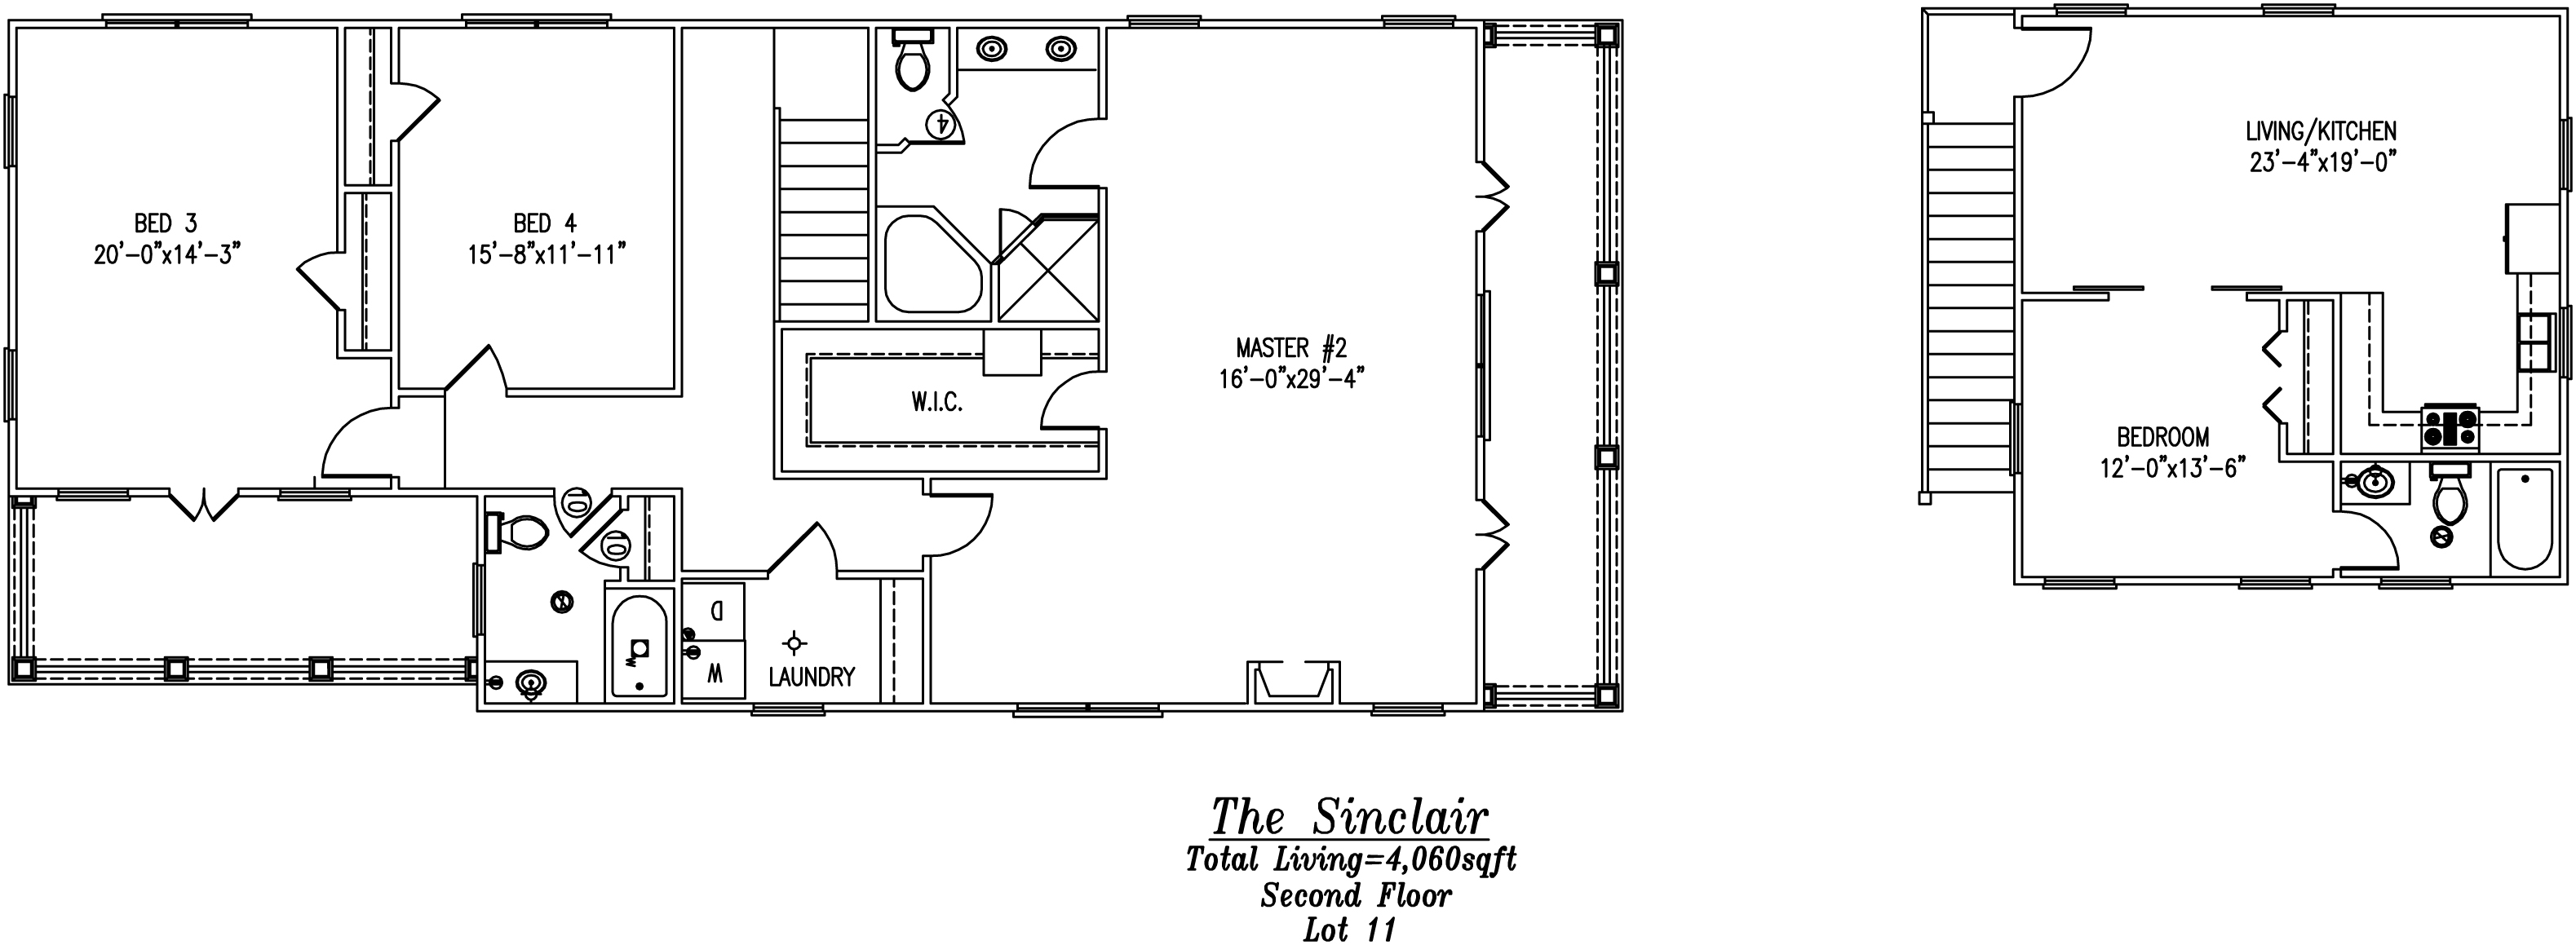 Sinclair Second Floor Plan